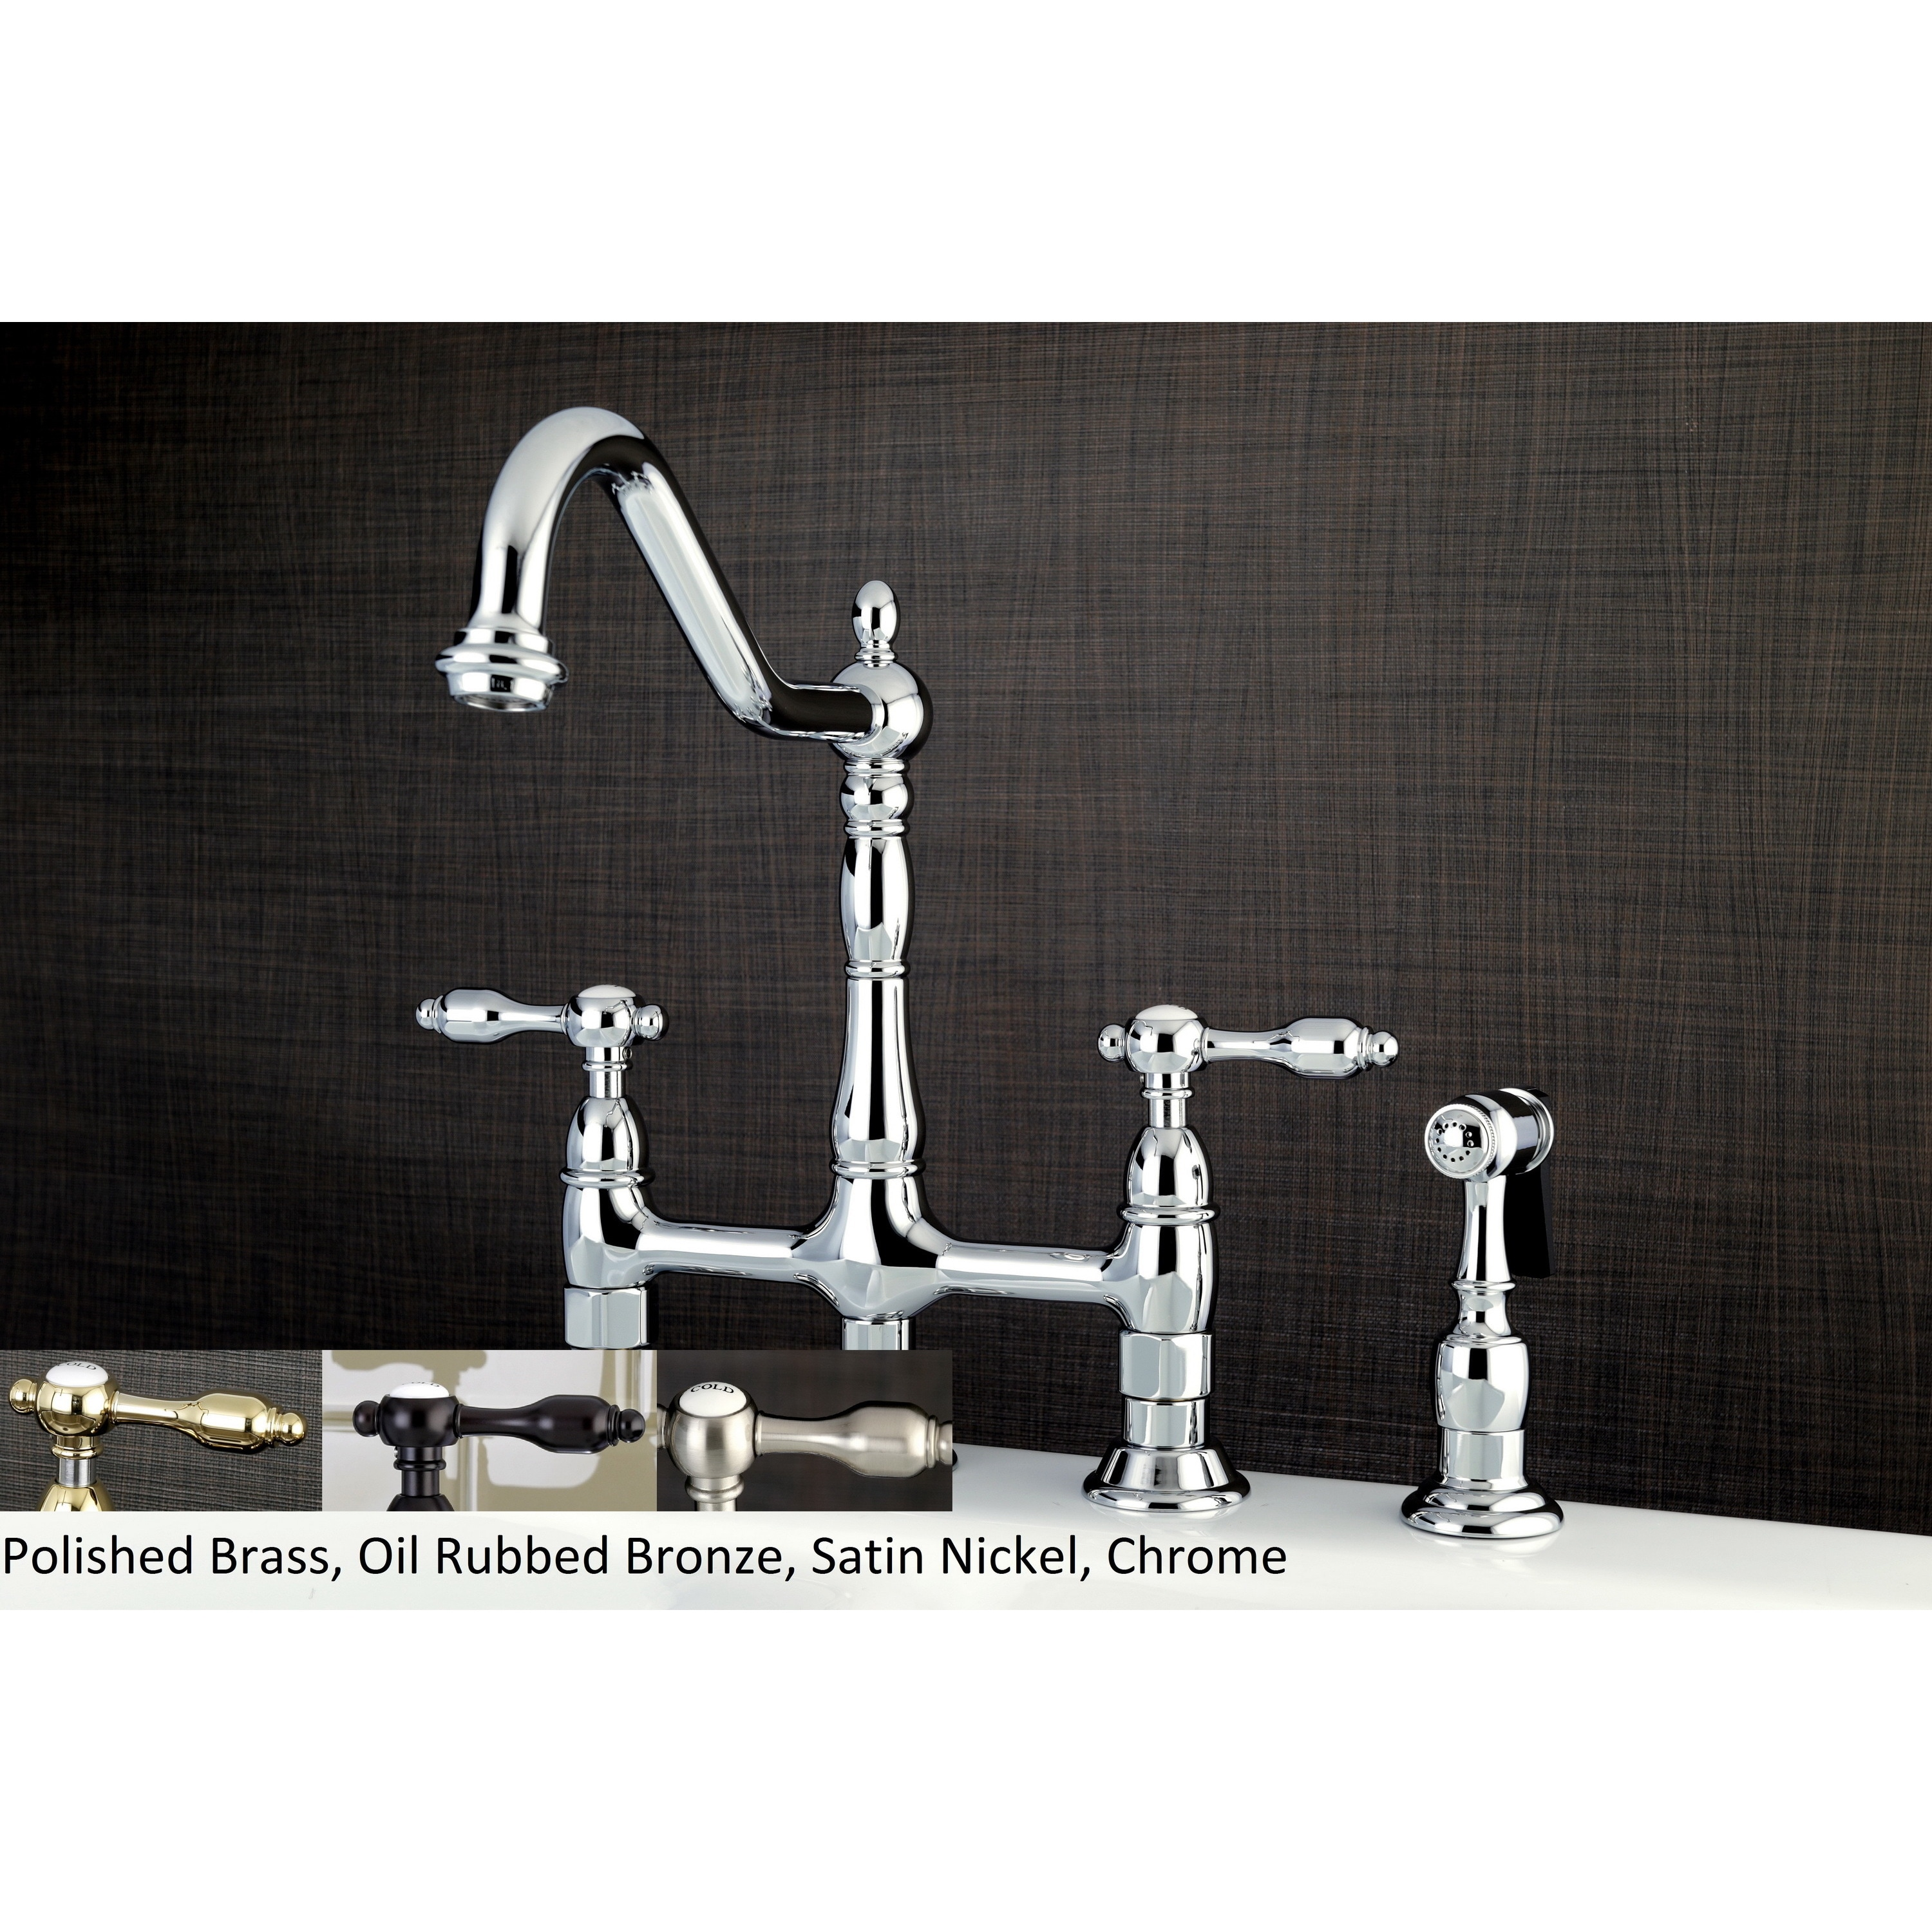 Buy Chrome Finish Kitchen Faucets Online at Overstock.com | Our Best ...